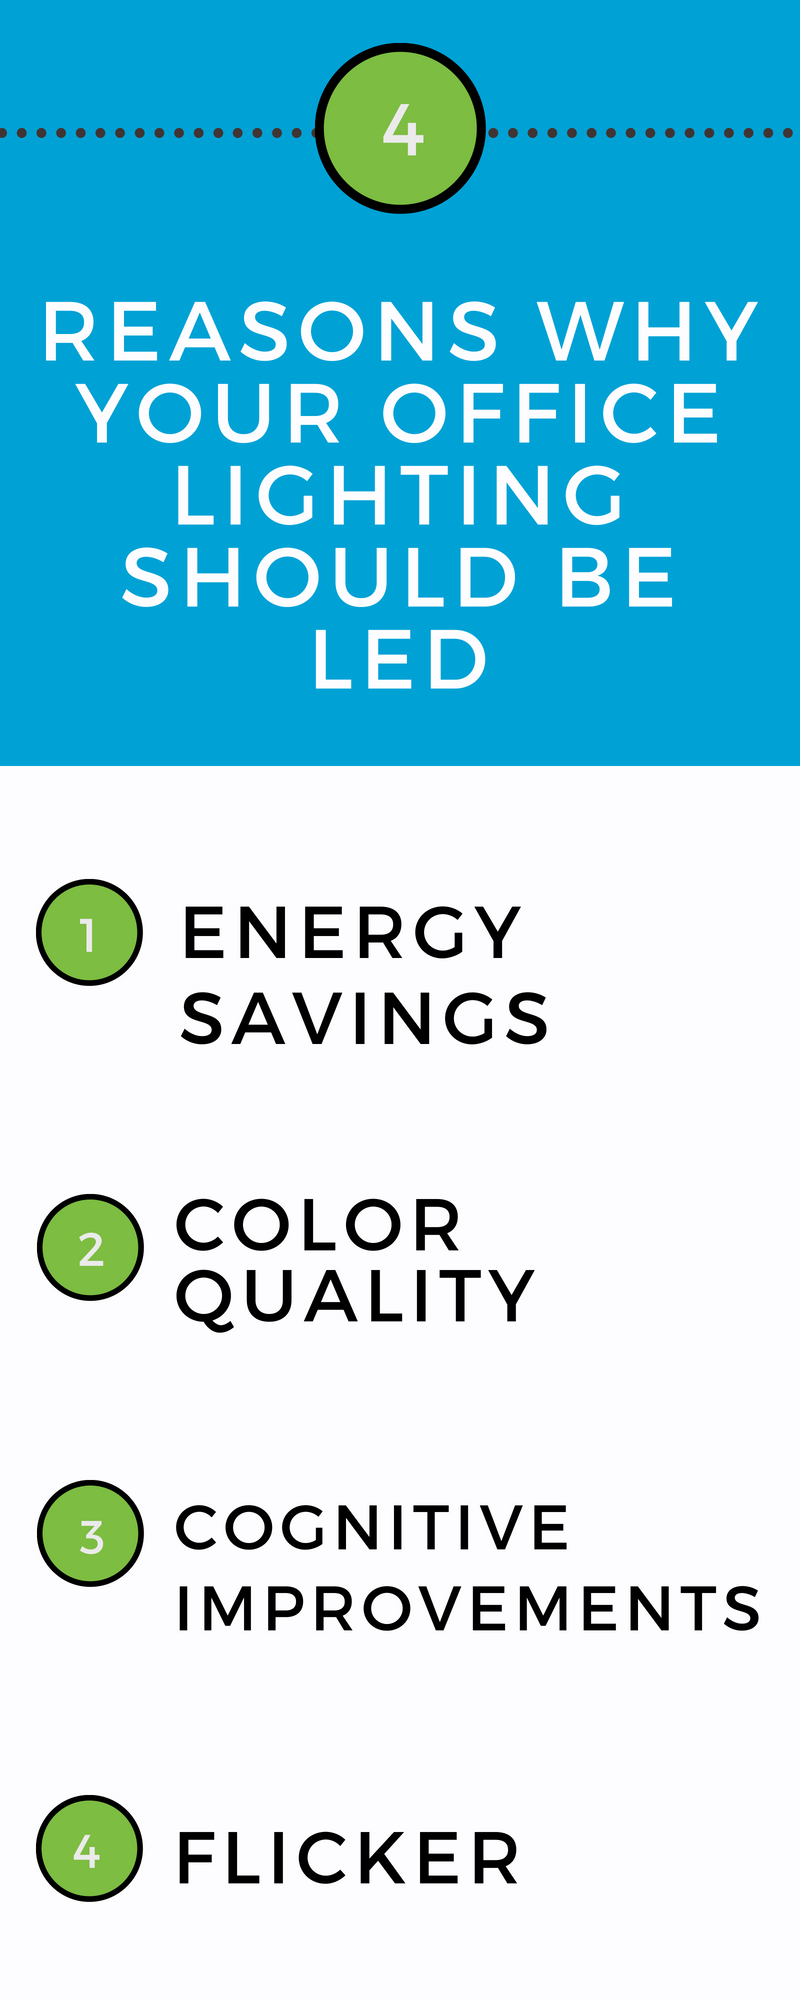 4 Reasons to Upgrade Your Office Lighting to LED Infographic